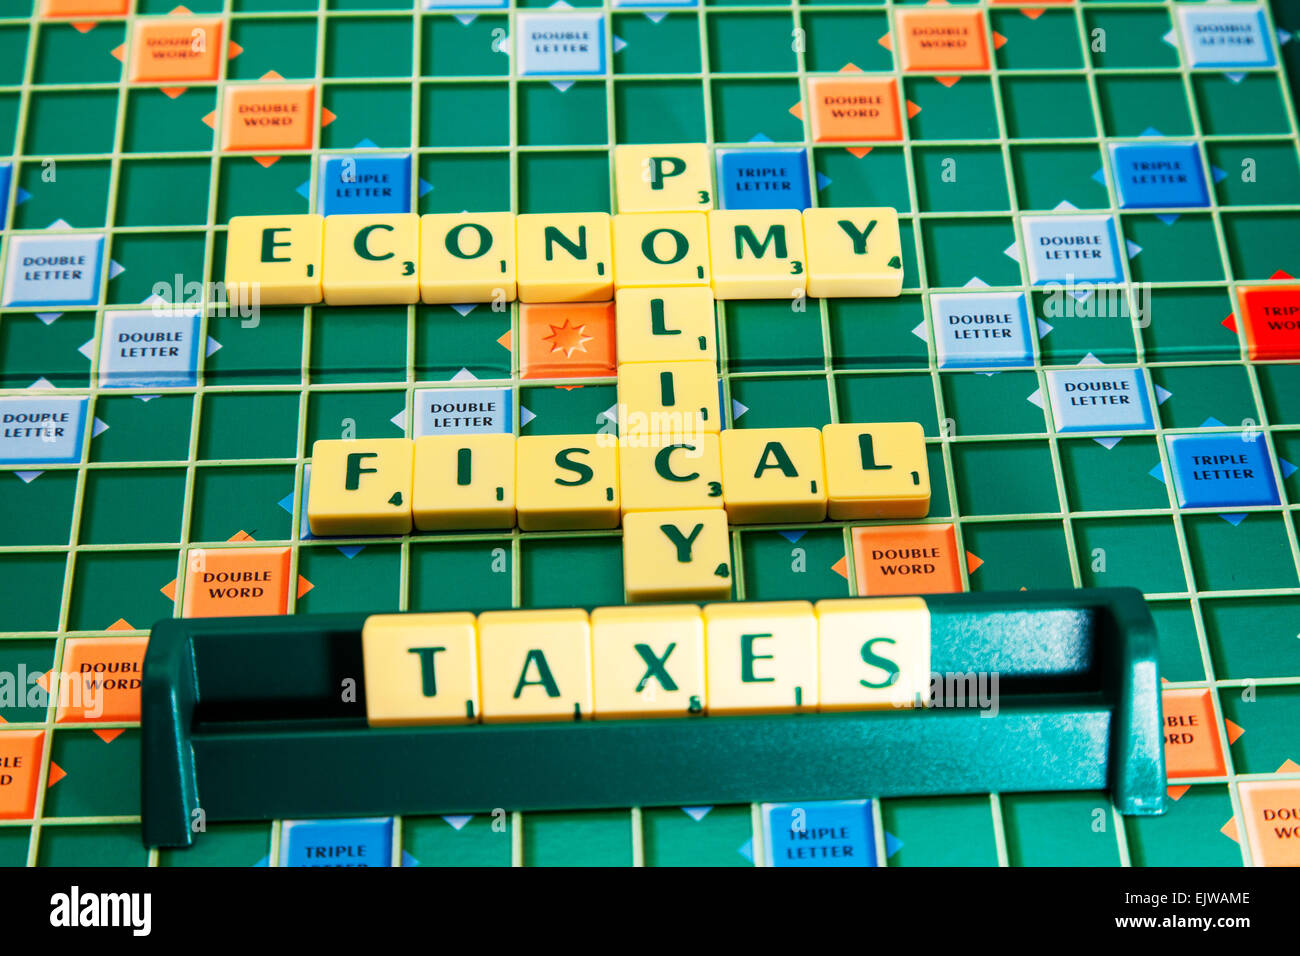 fiscal policy economy taxes studies government raising money tax vat words using scrabble tiles to spell out - Stock Image